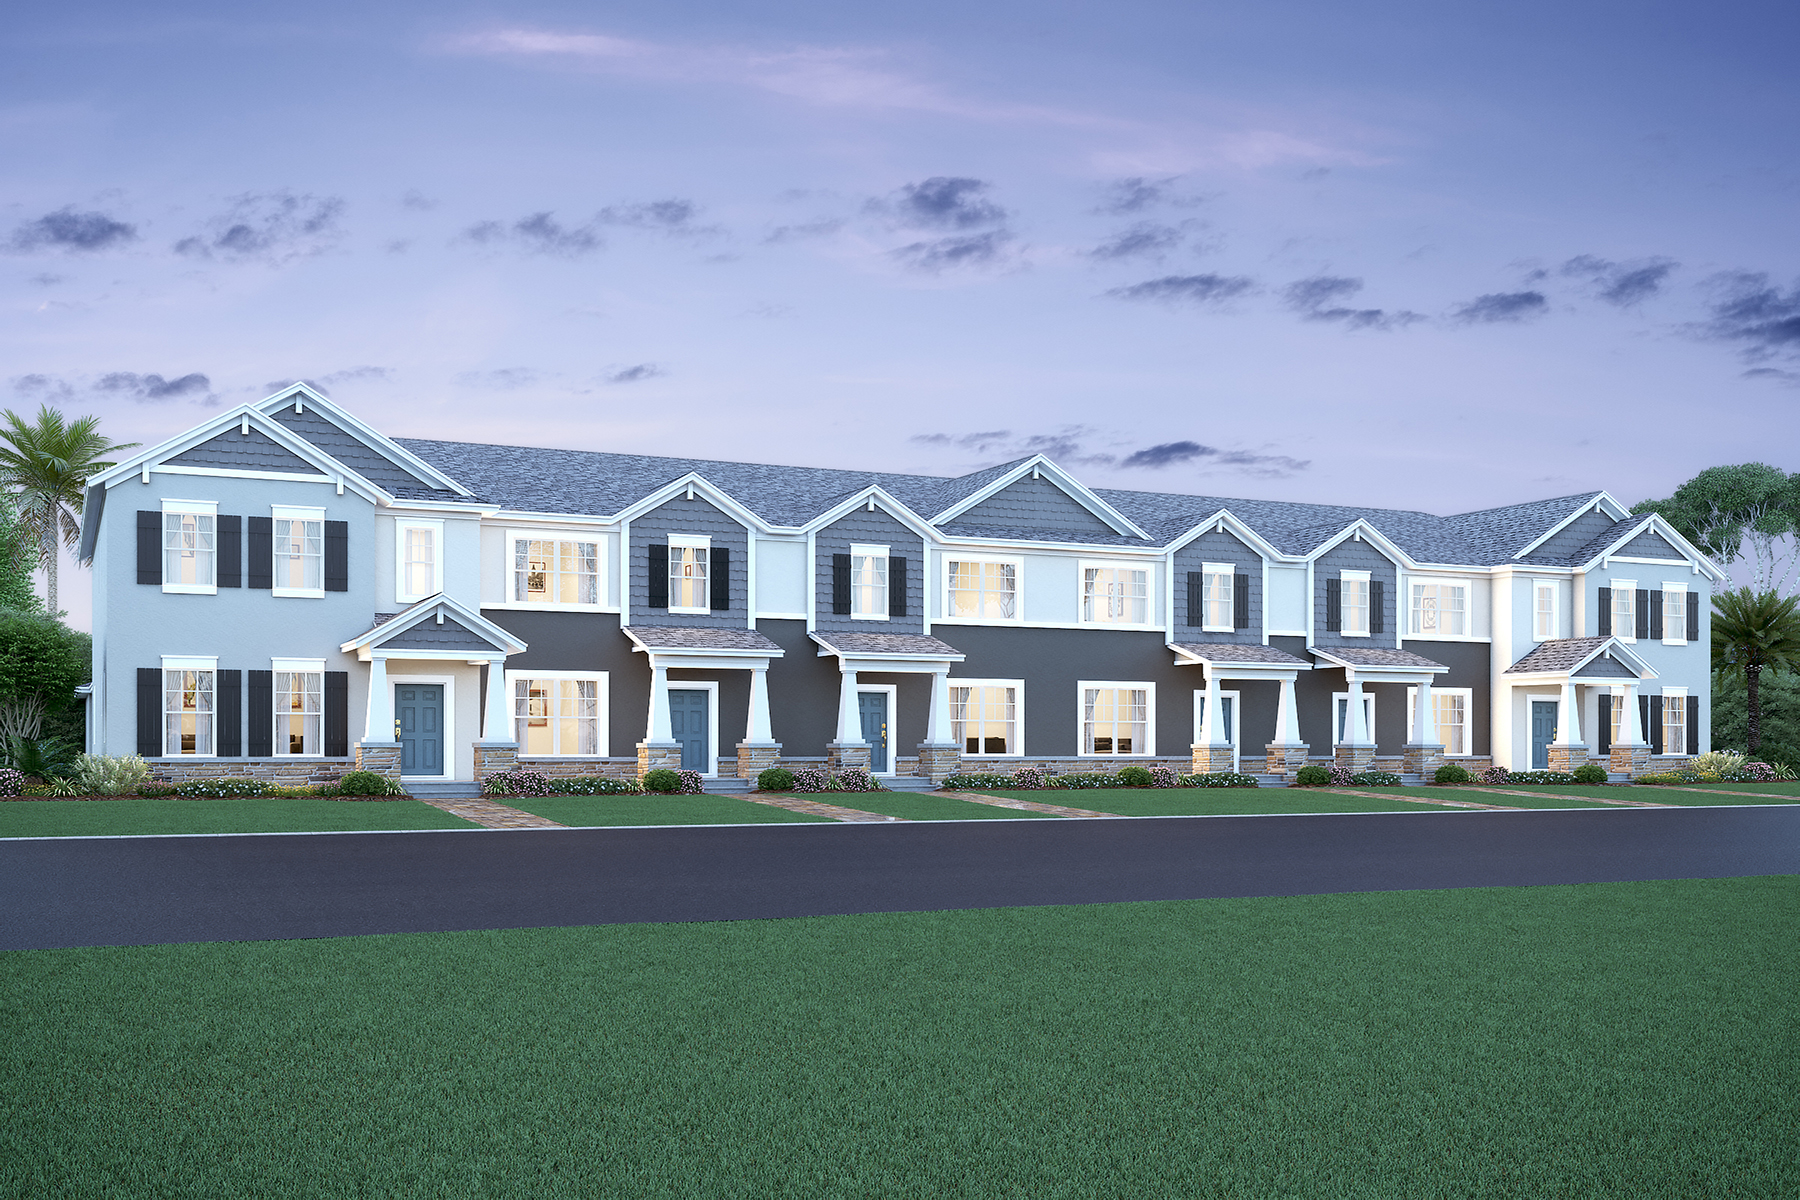 Heritage at plant street townhomes homes for sale in - Townhomes for sale in winter garden fl ...